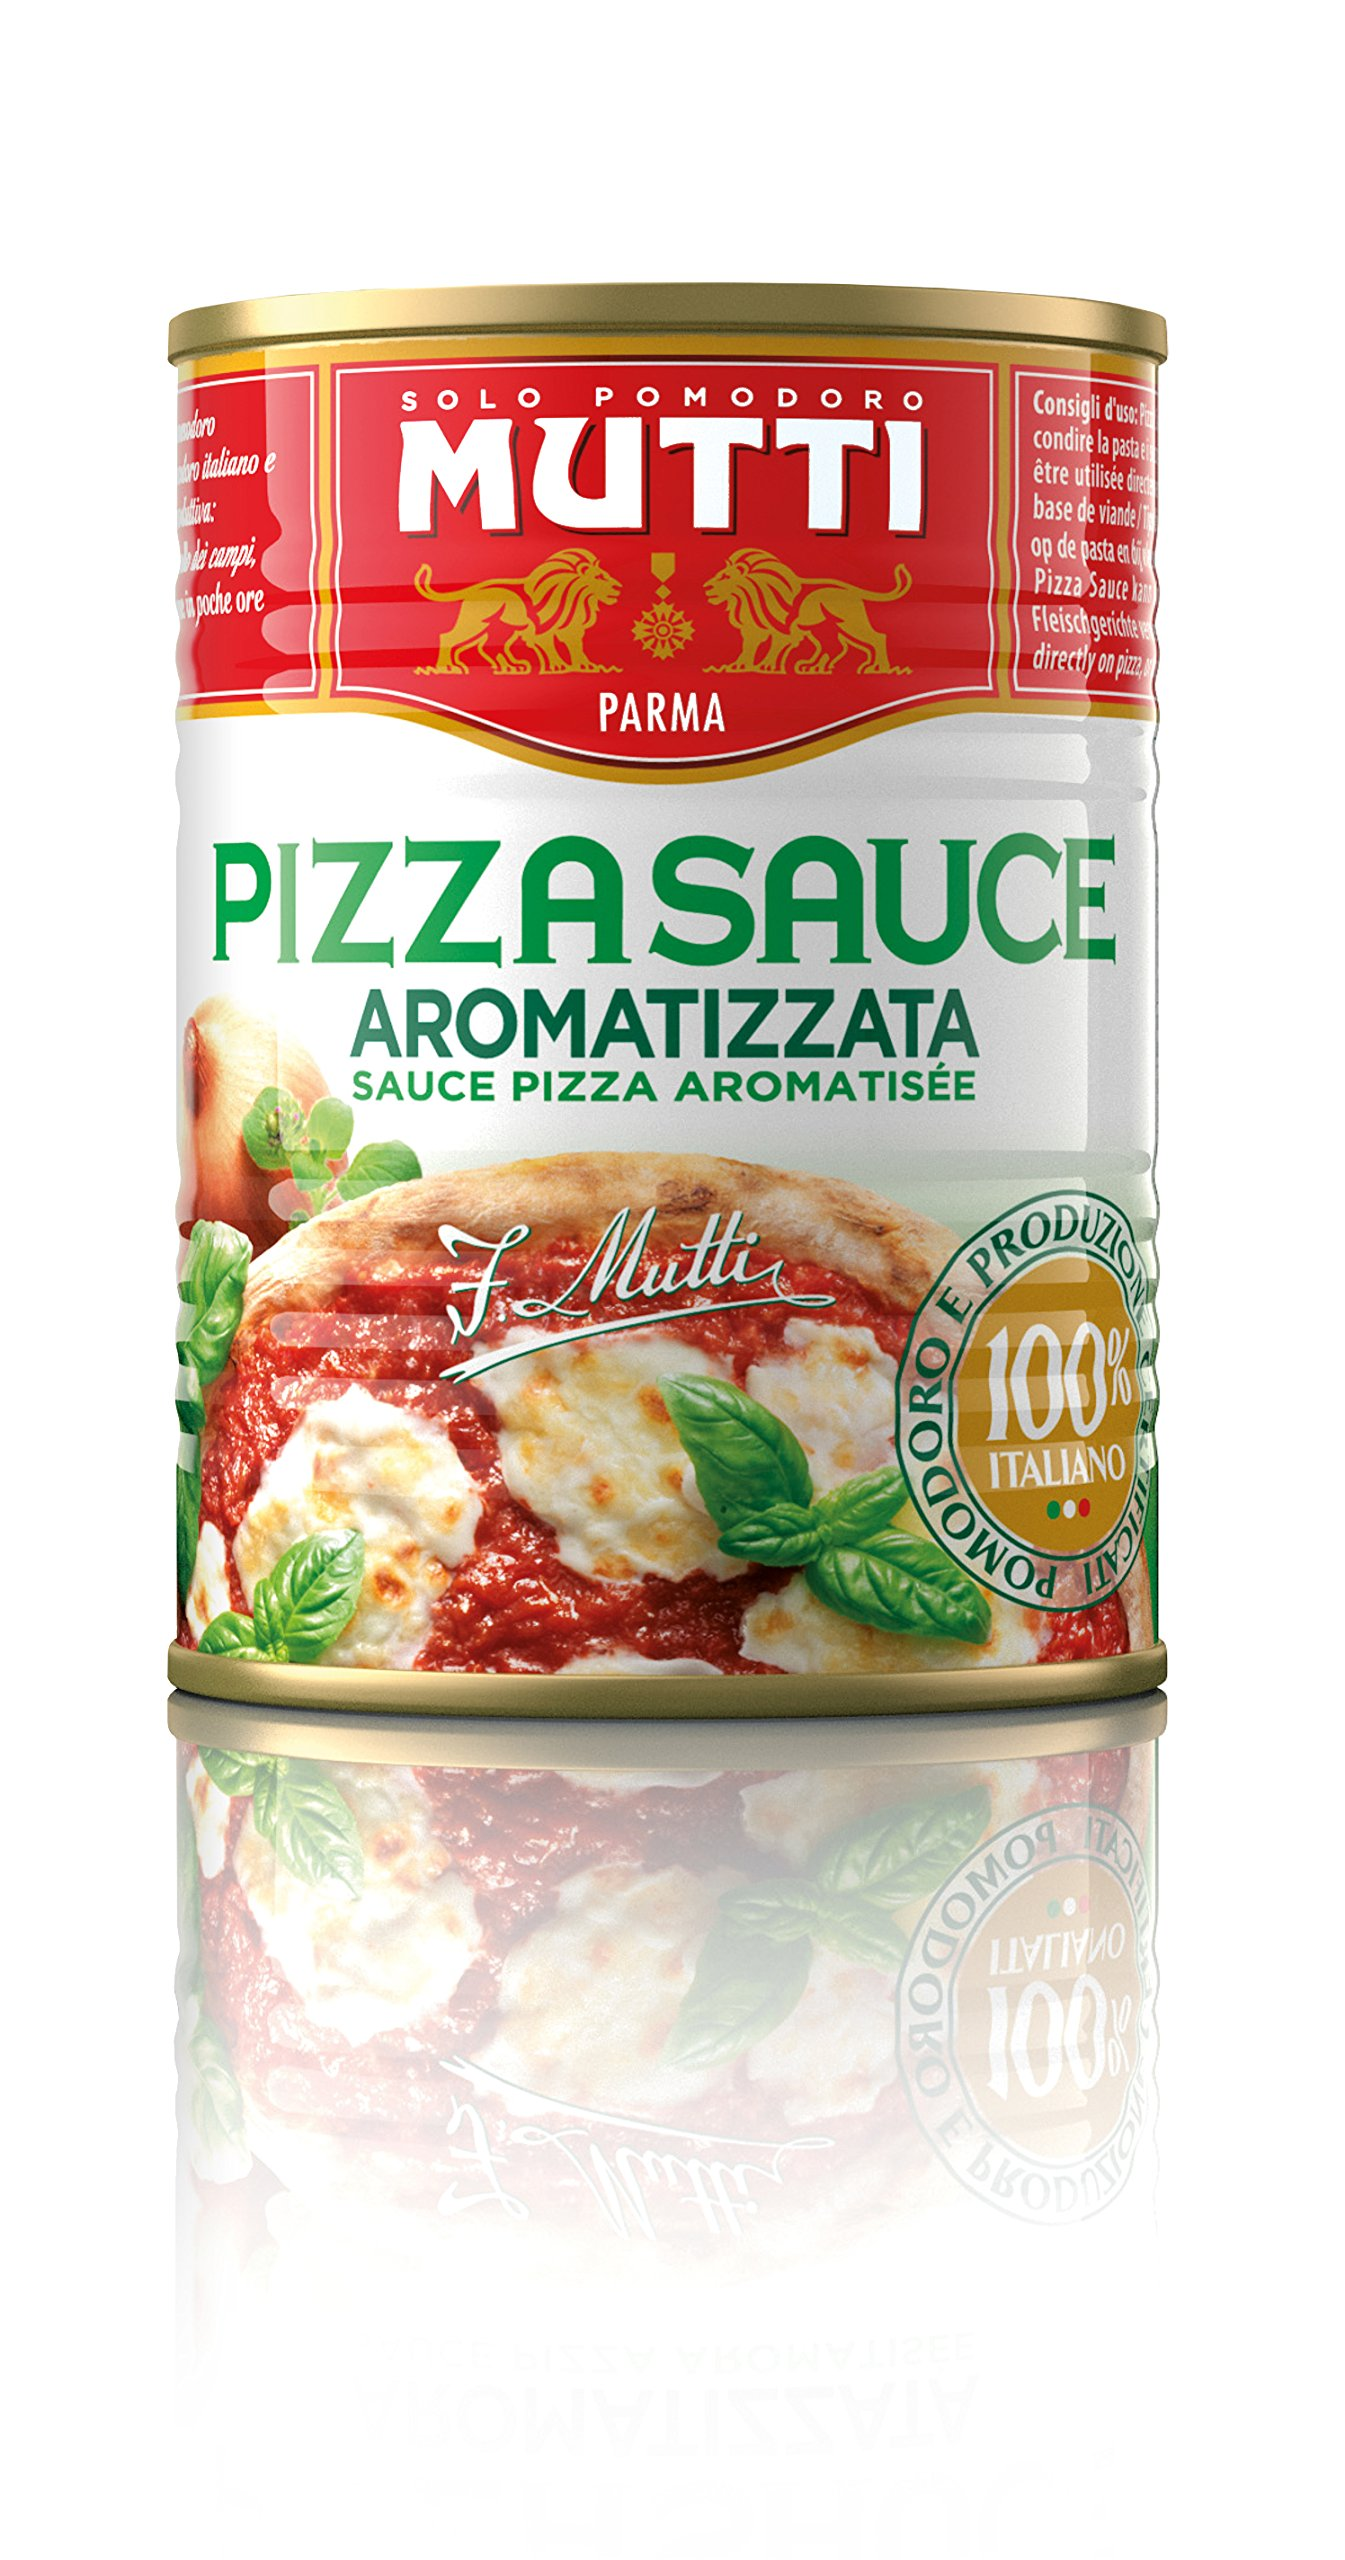 Mutti Pizza Sauce with Spices, 14 oz. Can, 12-Pack